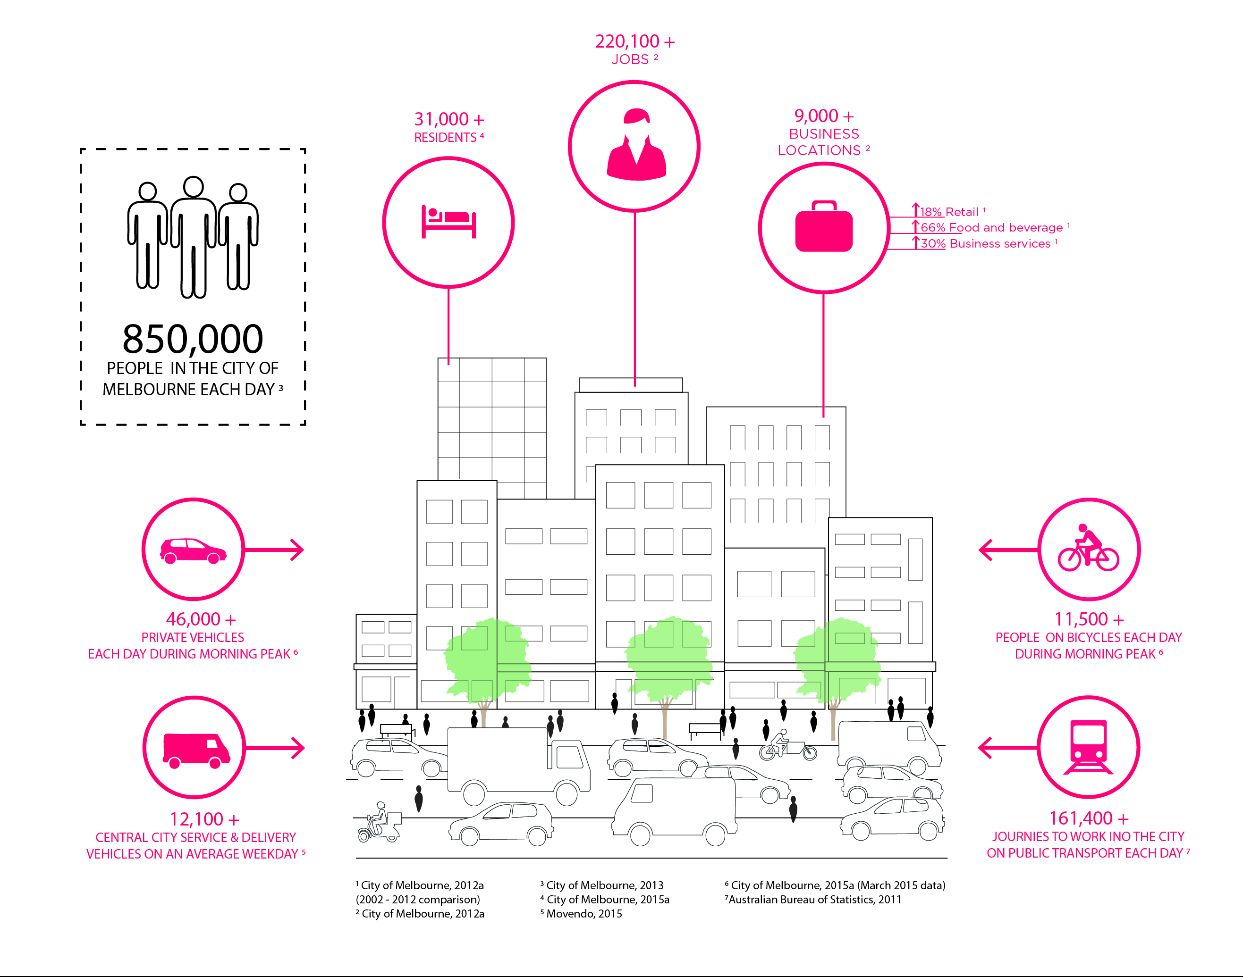 Infographic depicting metrics around growth in Melbourne from 2013.